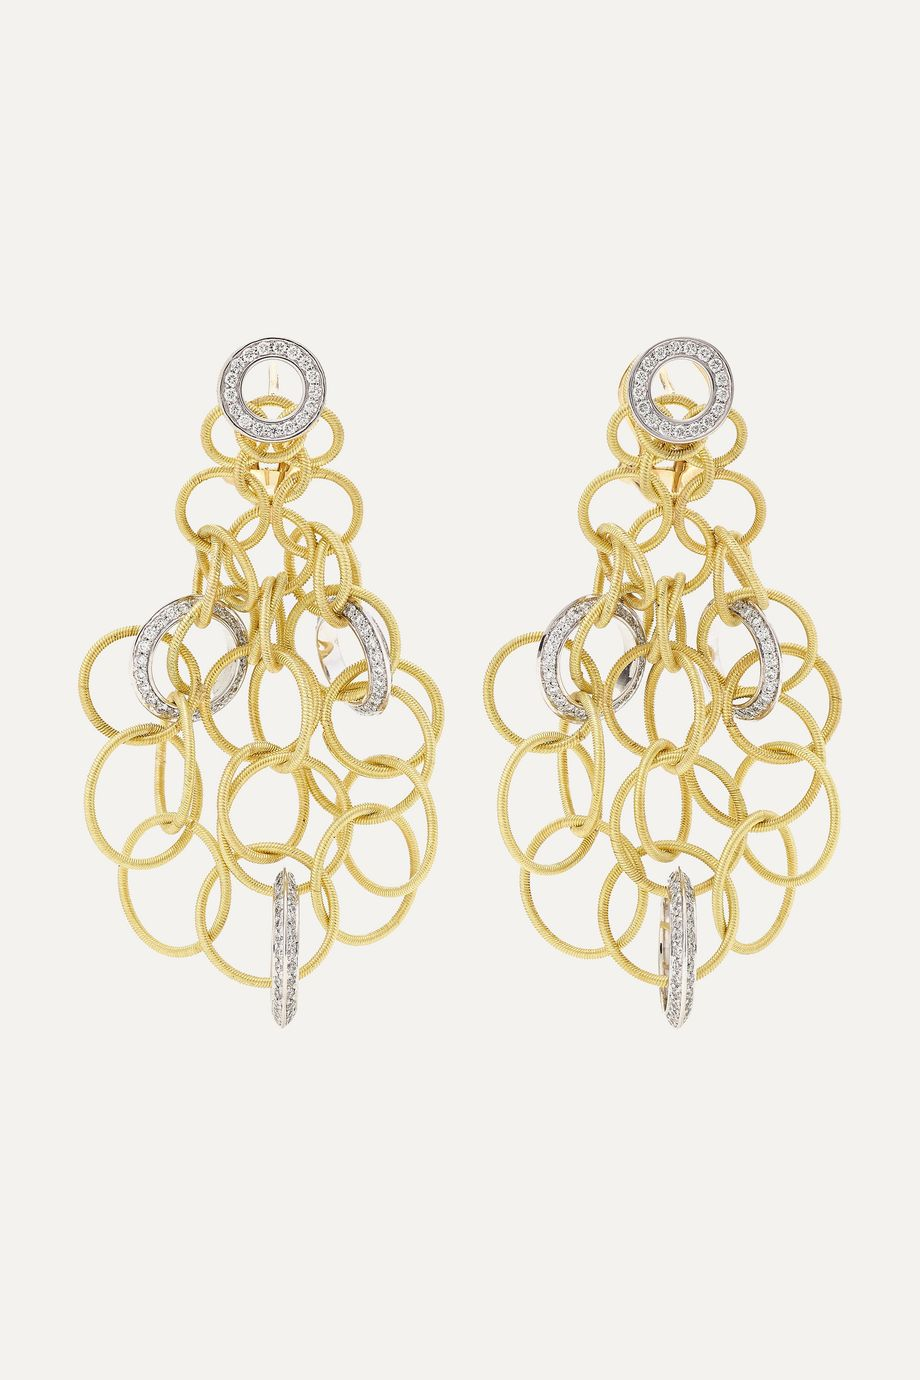 Buccellati Hawaii 18-karat yellow and white gold diamond earrings